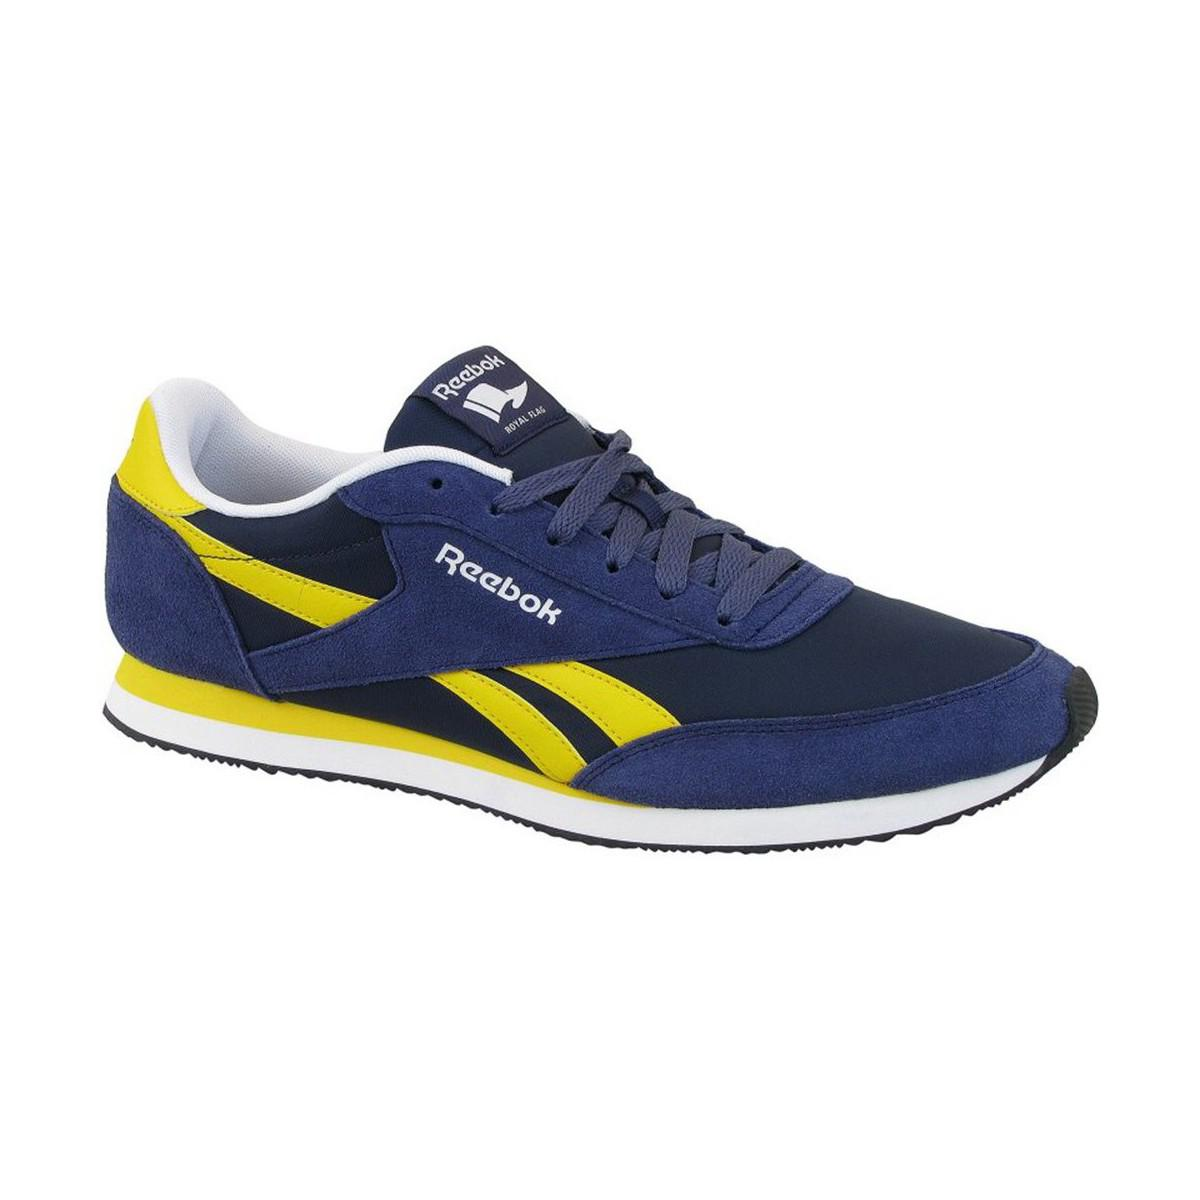 cb2ba330441 Reebok - Blue Royal Cl Jogger 2 Men s Shoes (trainers) In Multicolour for  Men. View fullscreen